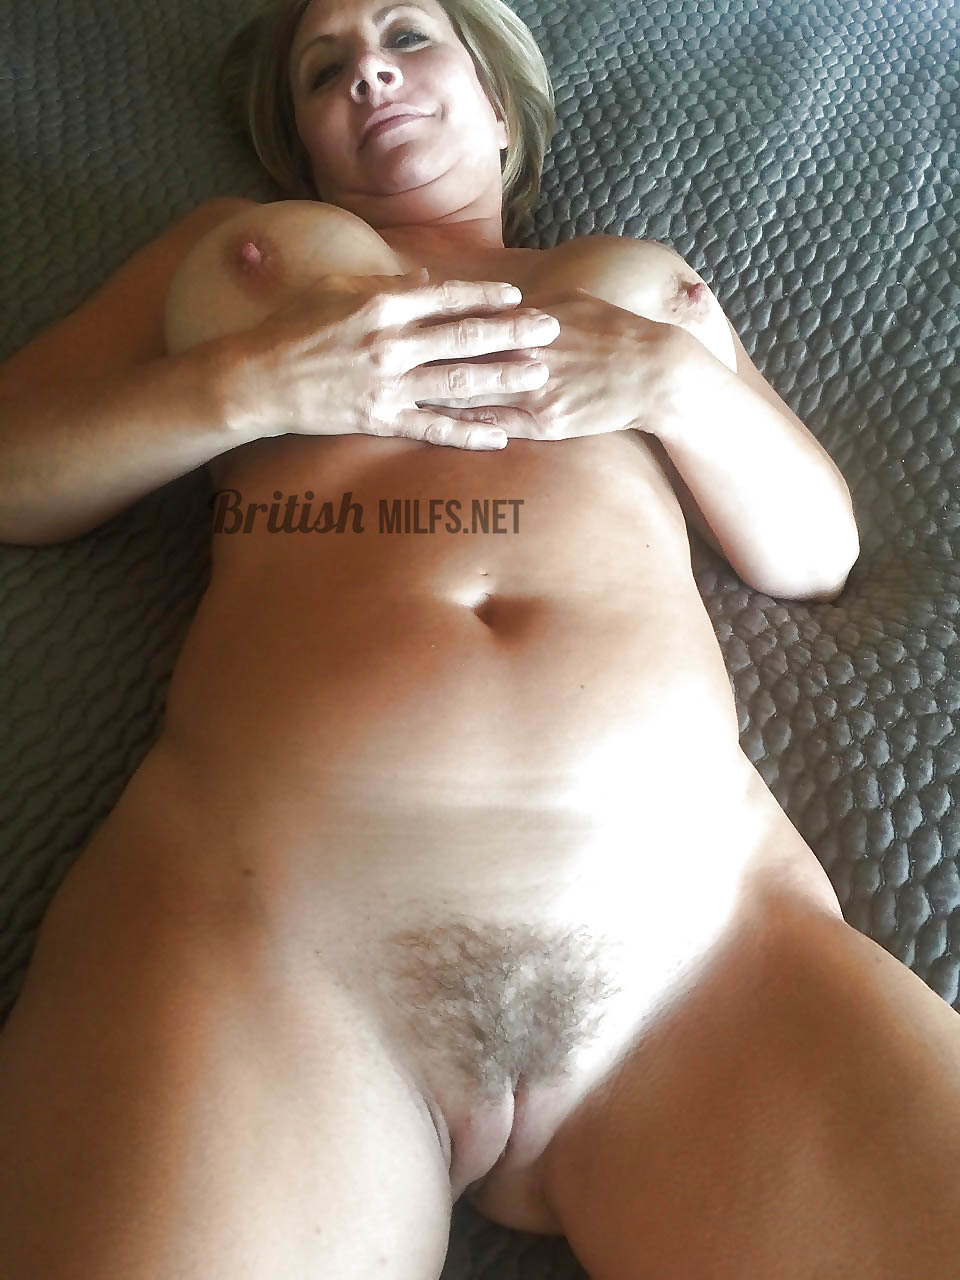 Bride slut porn caption